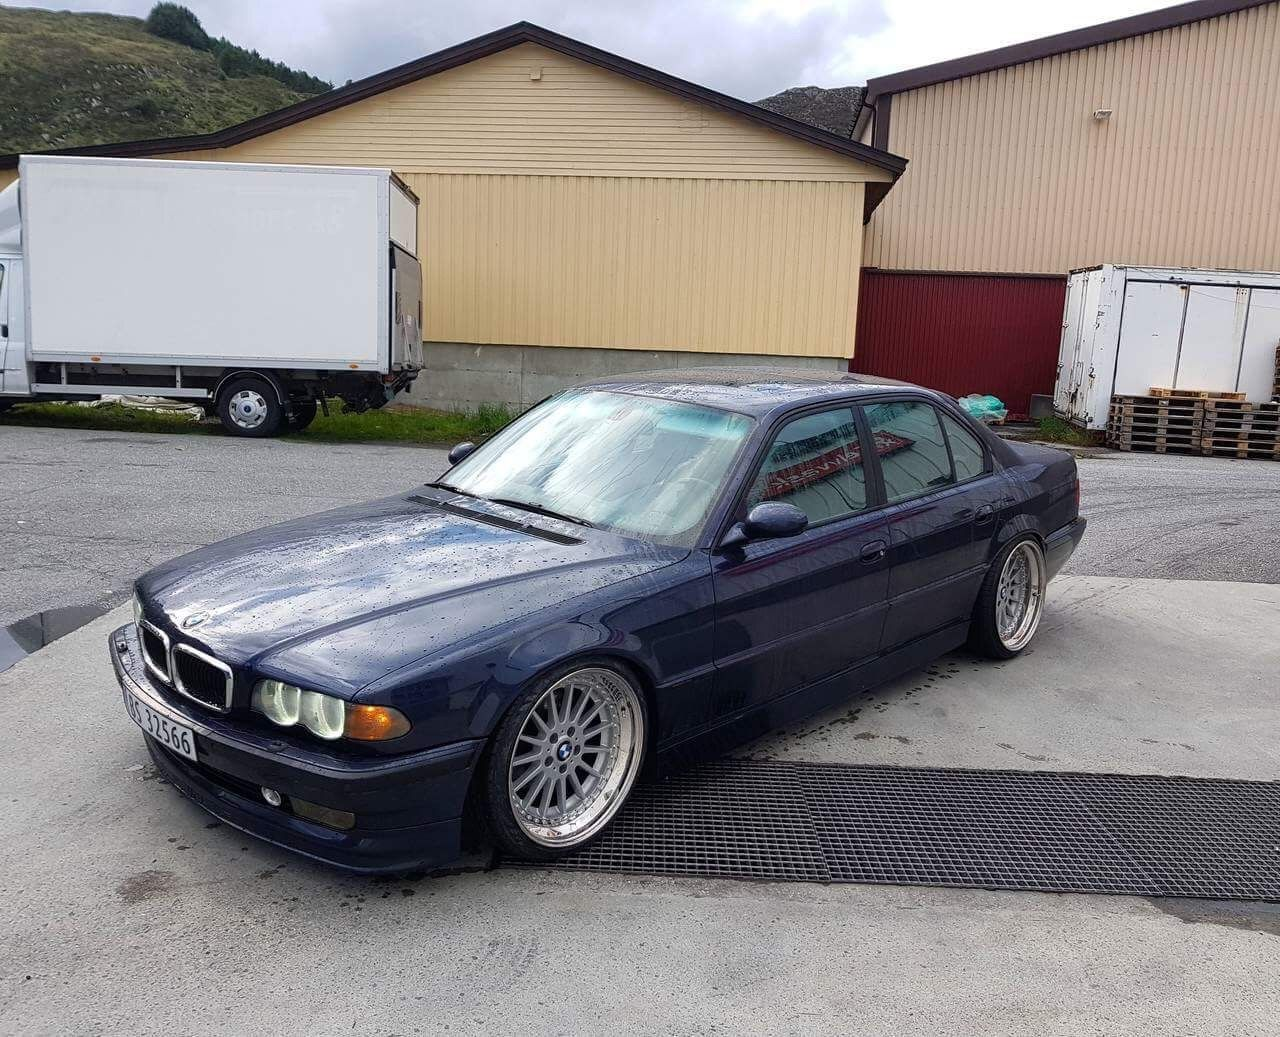 bmw e38 custom style 32 splits m5 mirrors on e38 bmw. Black Bedroom Furniture Sets. Home Design Ideas